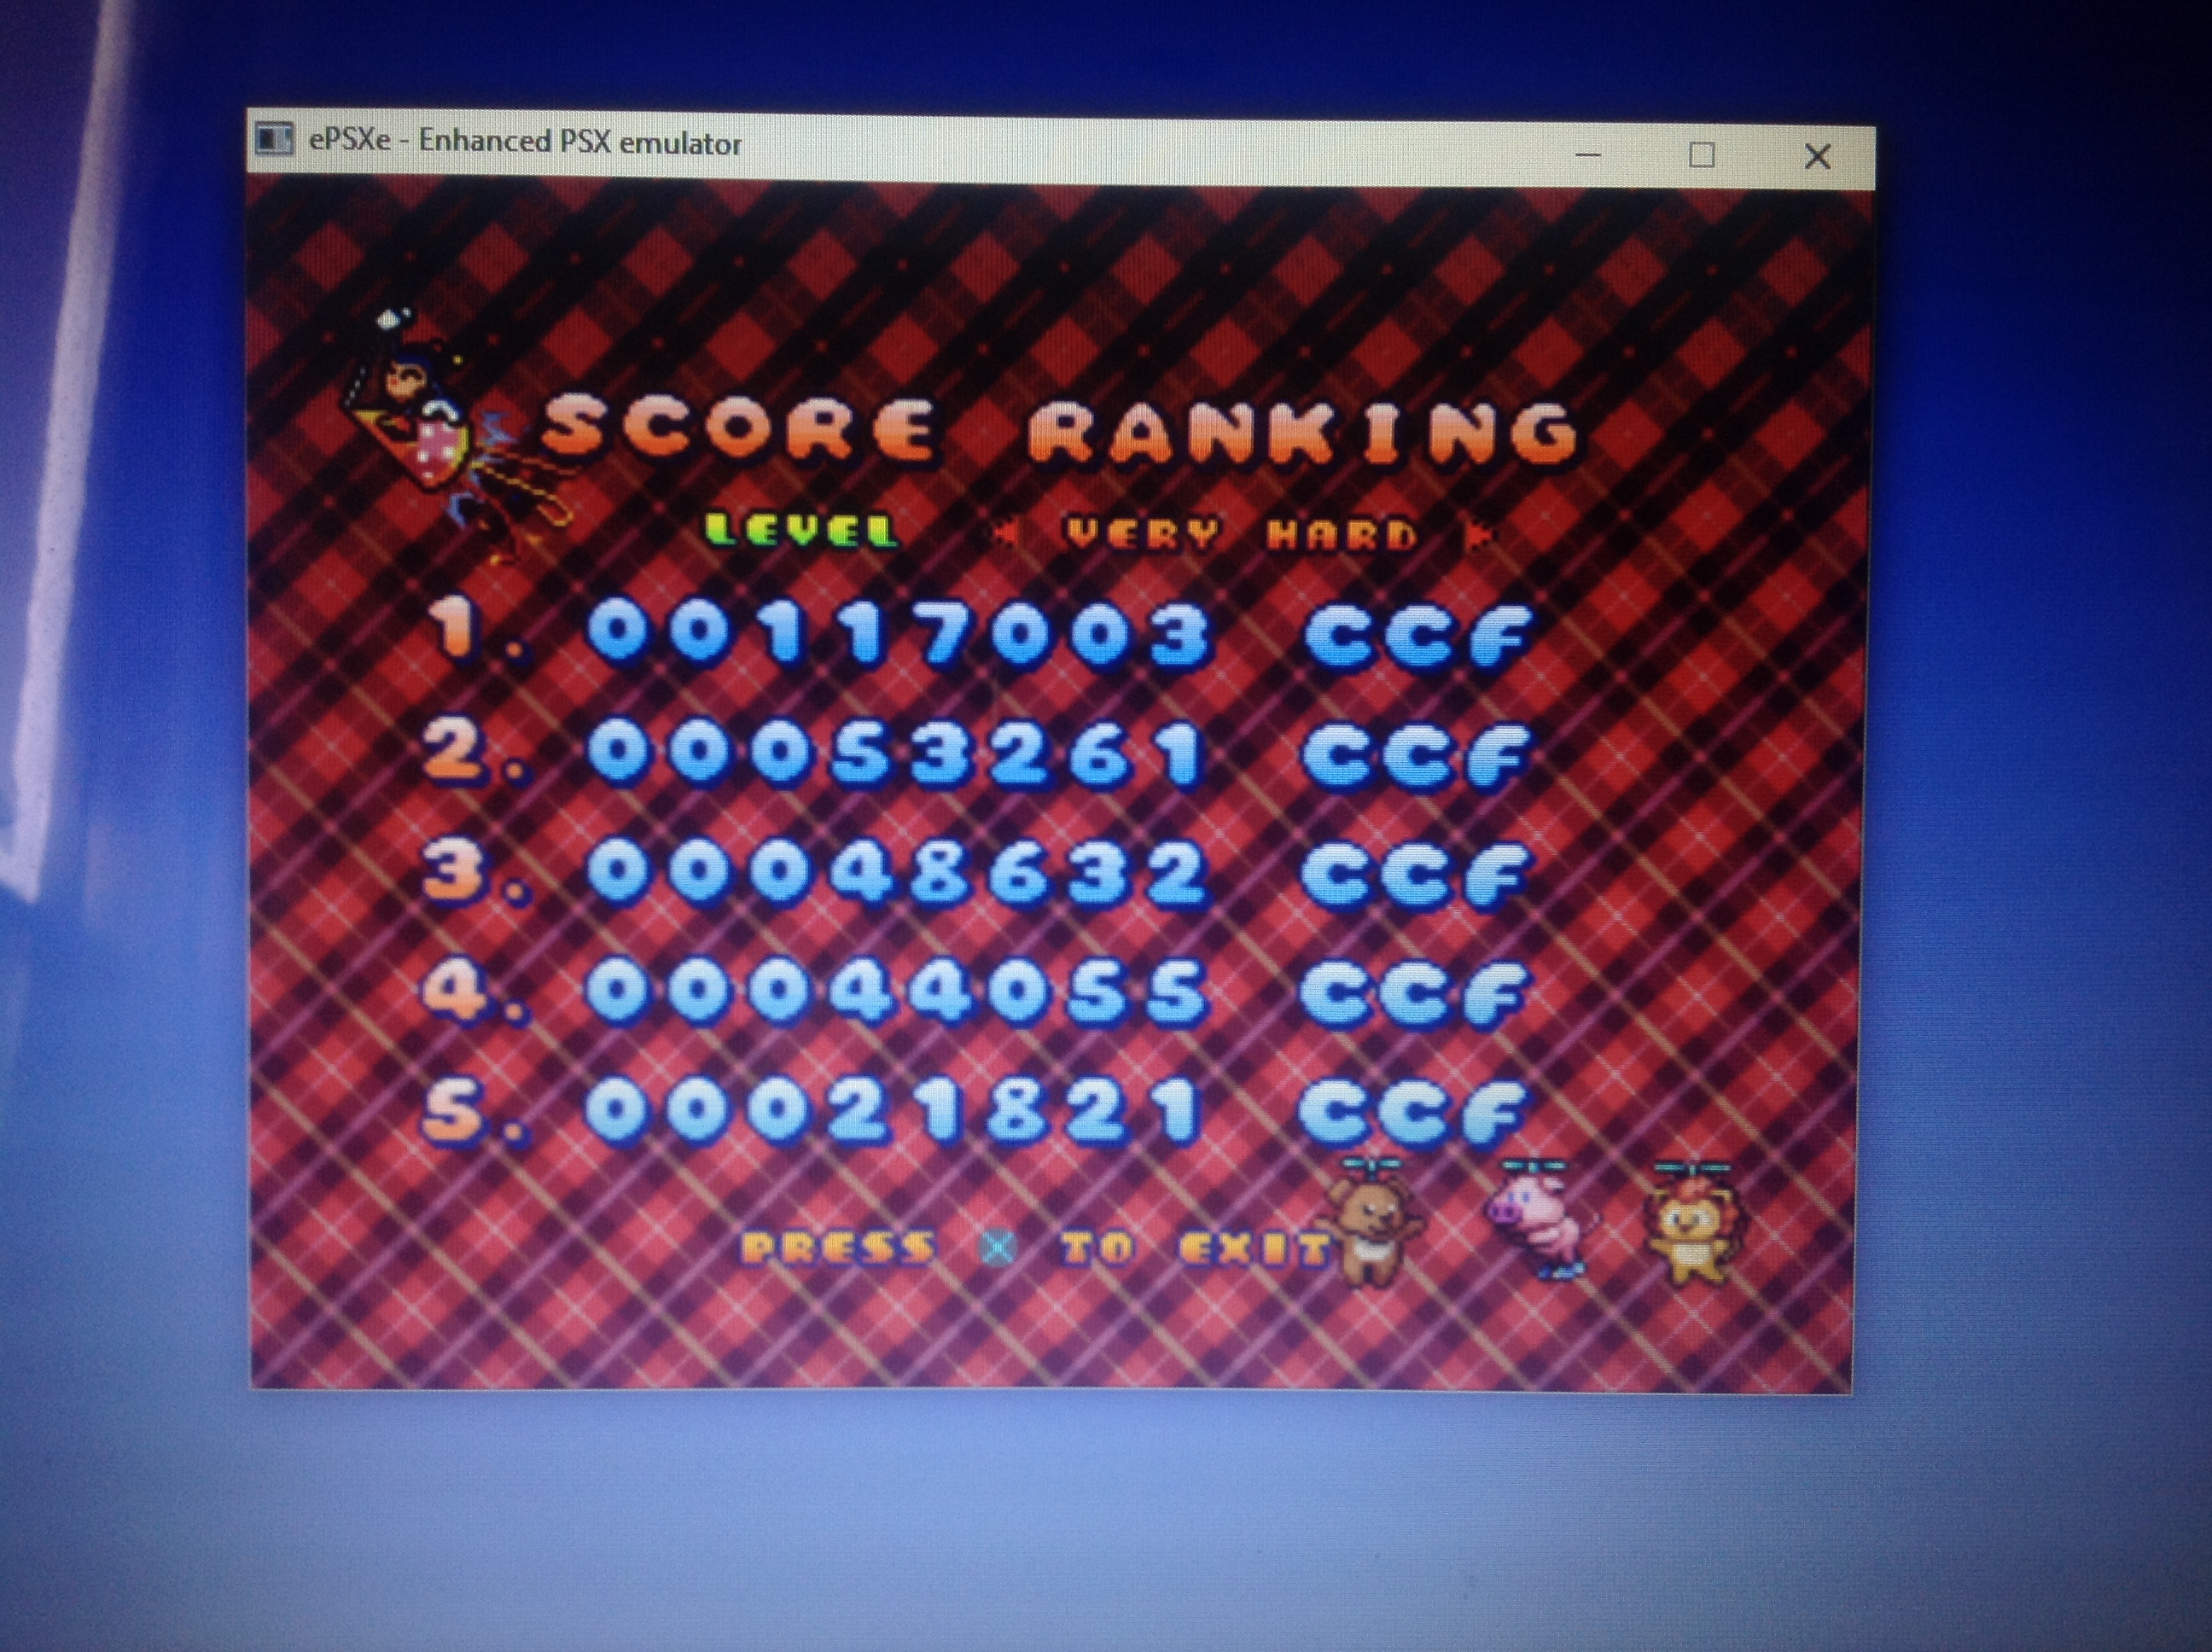 CoCoForest: Harmful Park [Very Hard] (Playstation 1 Emulated) 117,003 points on 2018-01-28 07:03:32